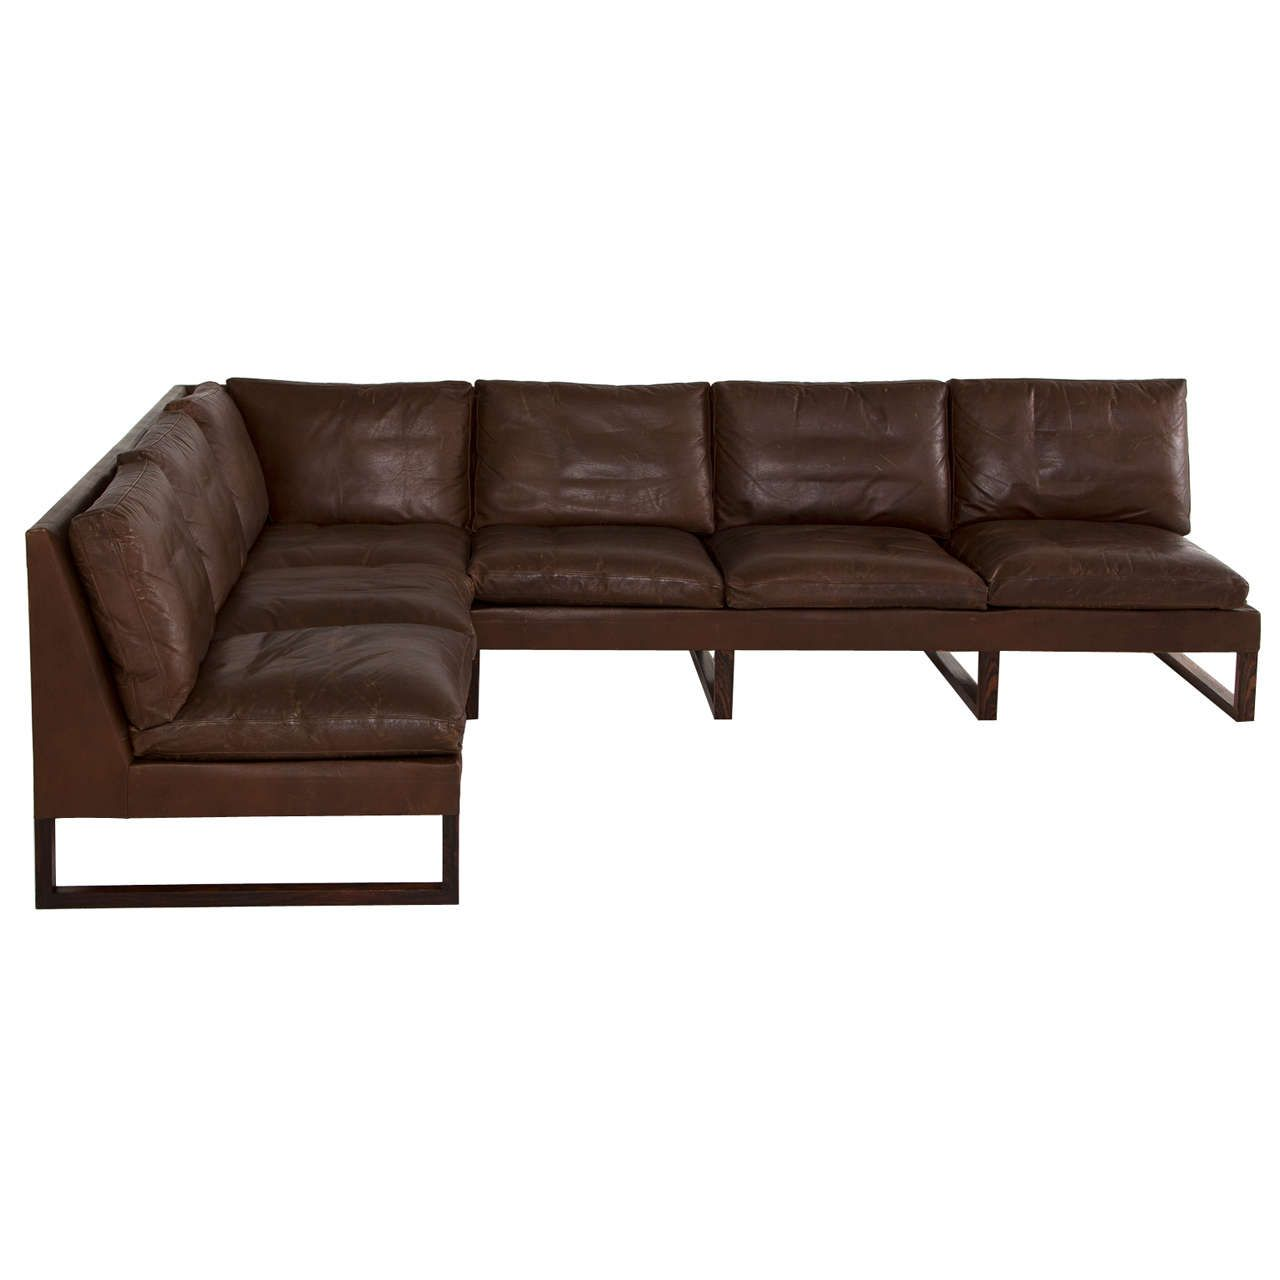 Danish Mid Century Sectional Sofa In Dark Brown Leather 1960s From A Unique Collection Of Brown Leather Sofa Modern Leather Sofa Mid Century Sectional Sofa